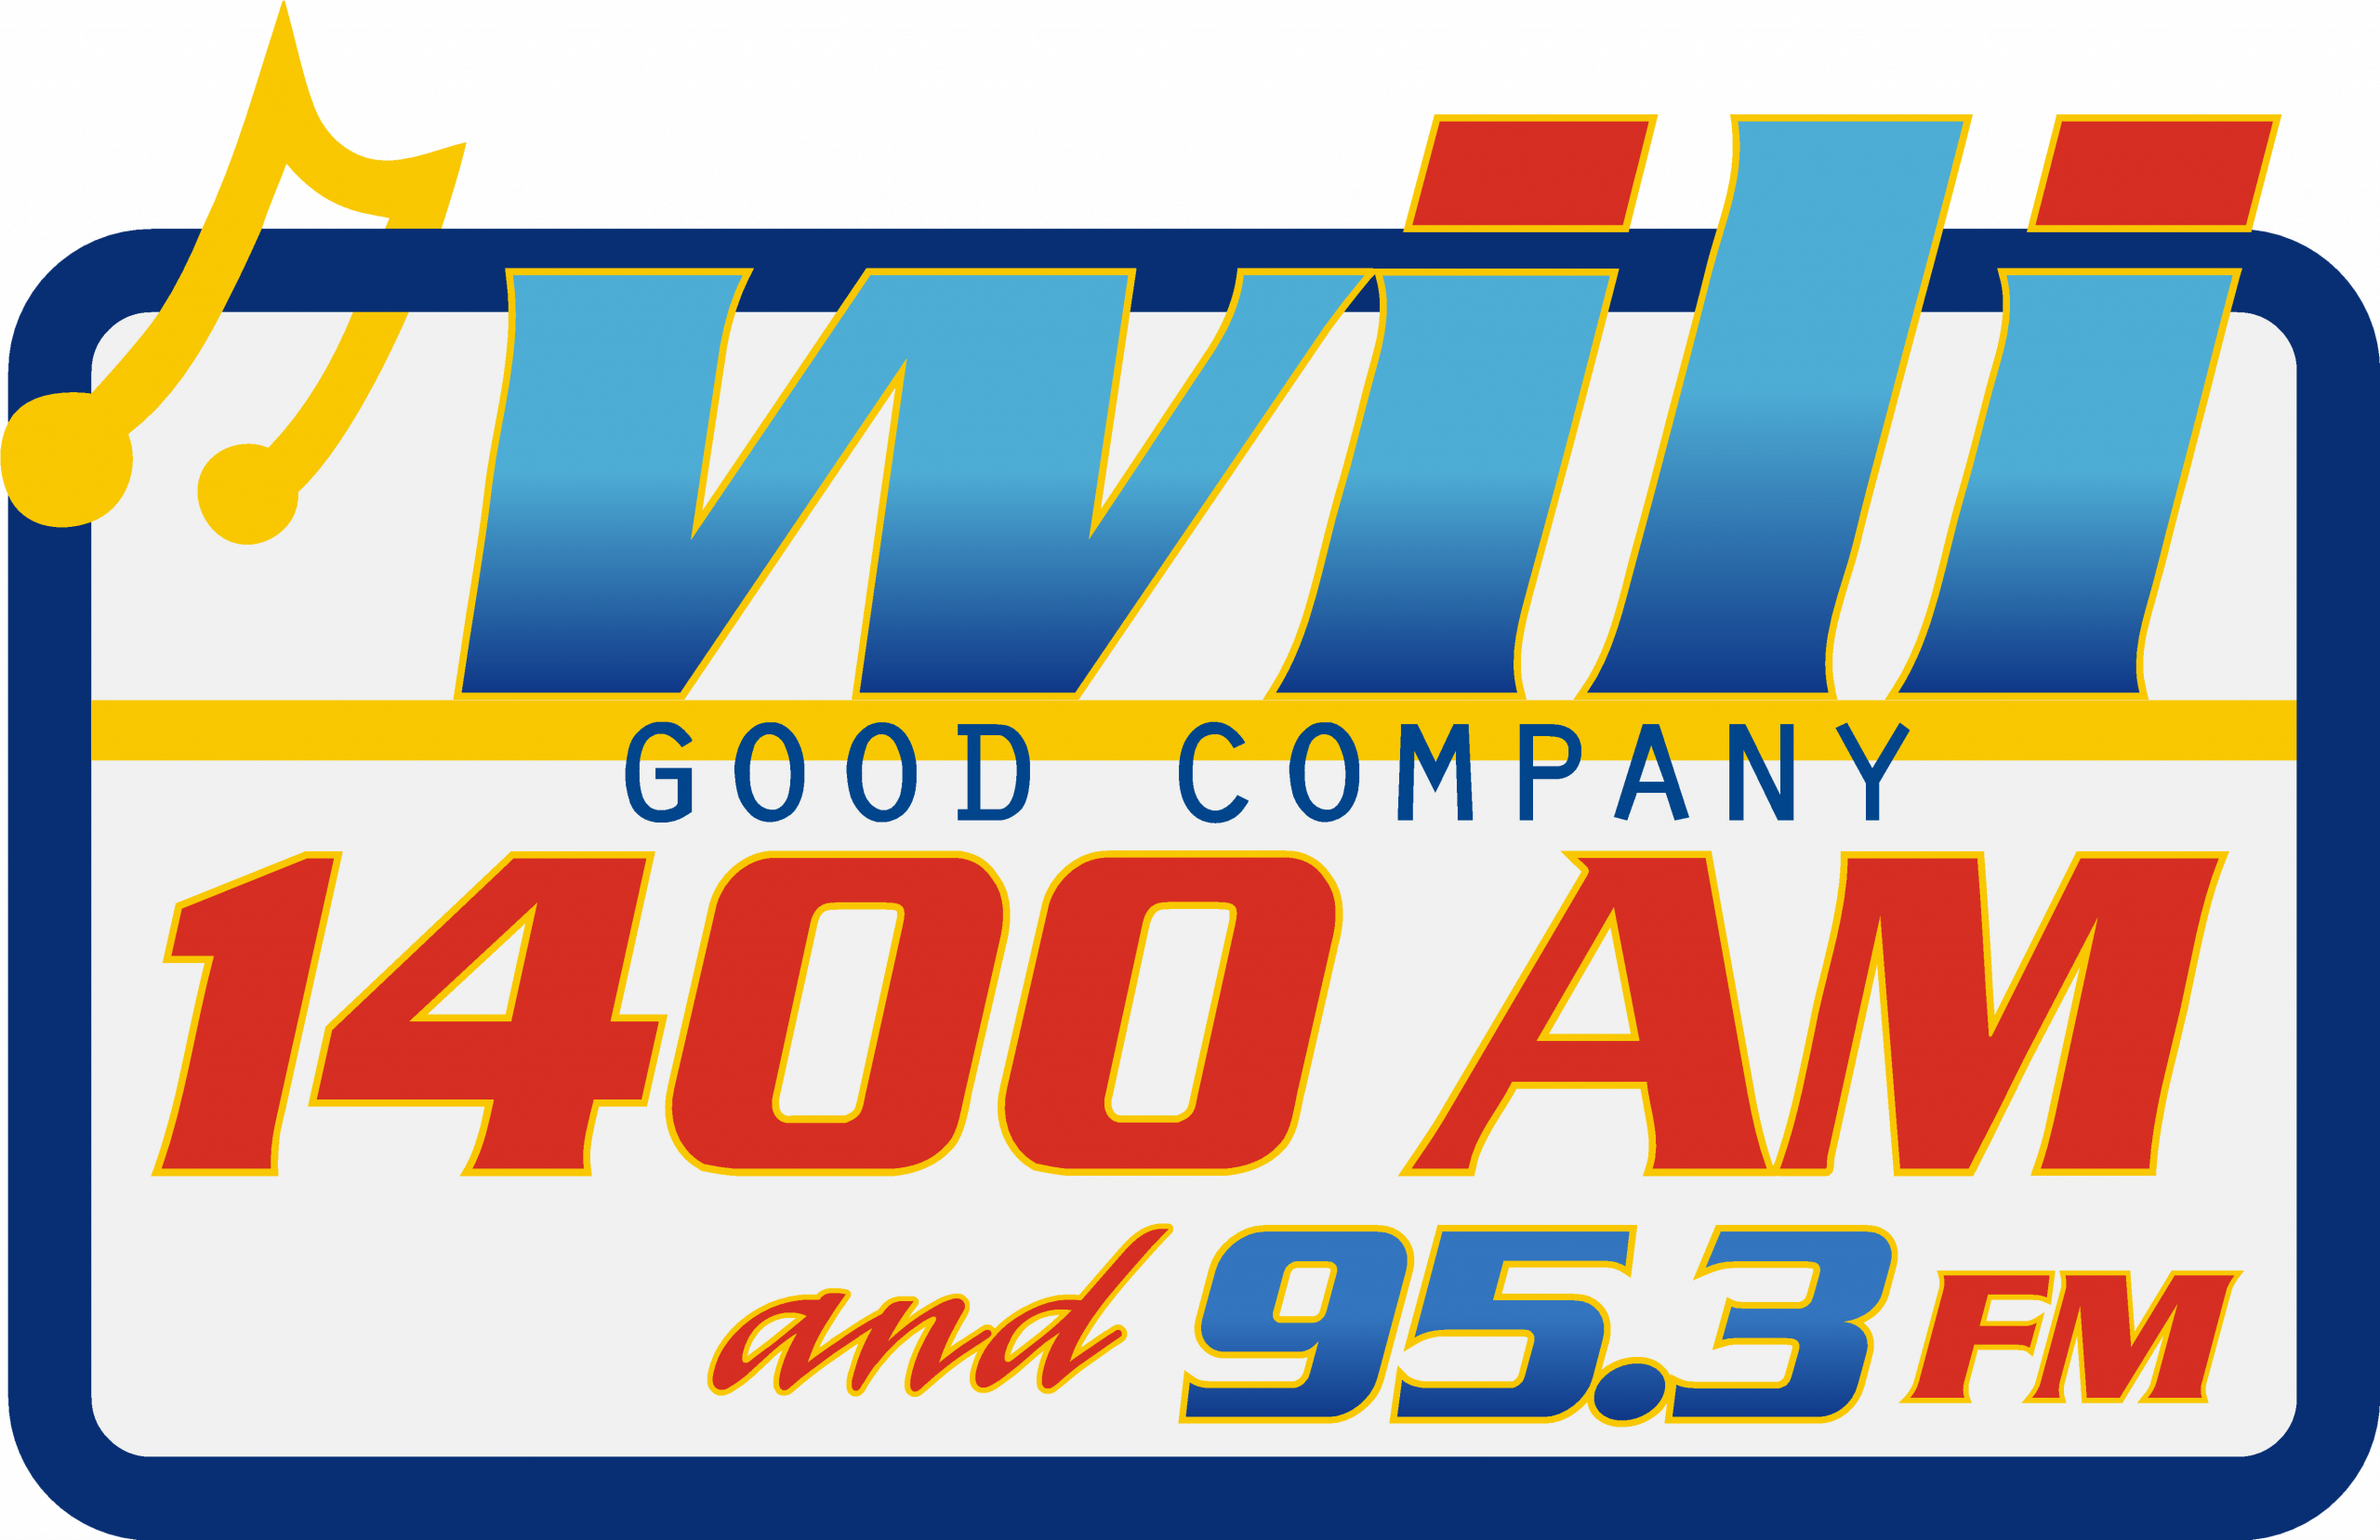 Image result for wili 1400 am